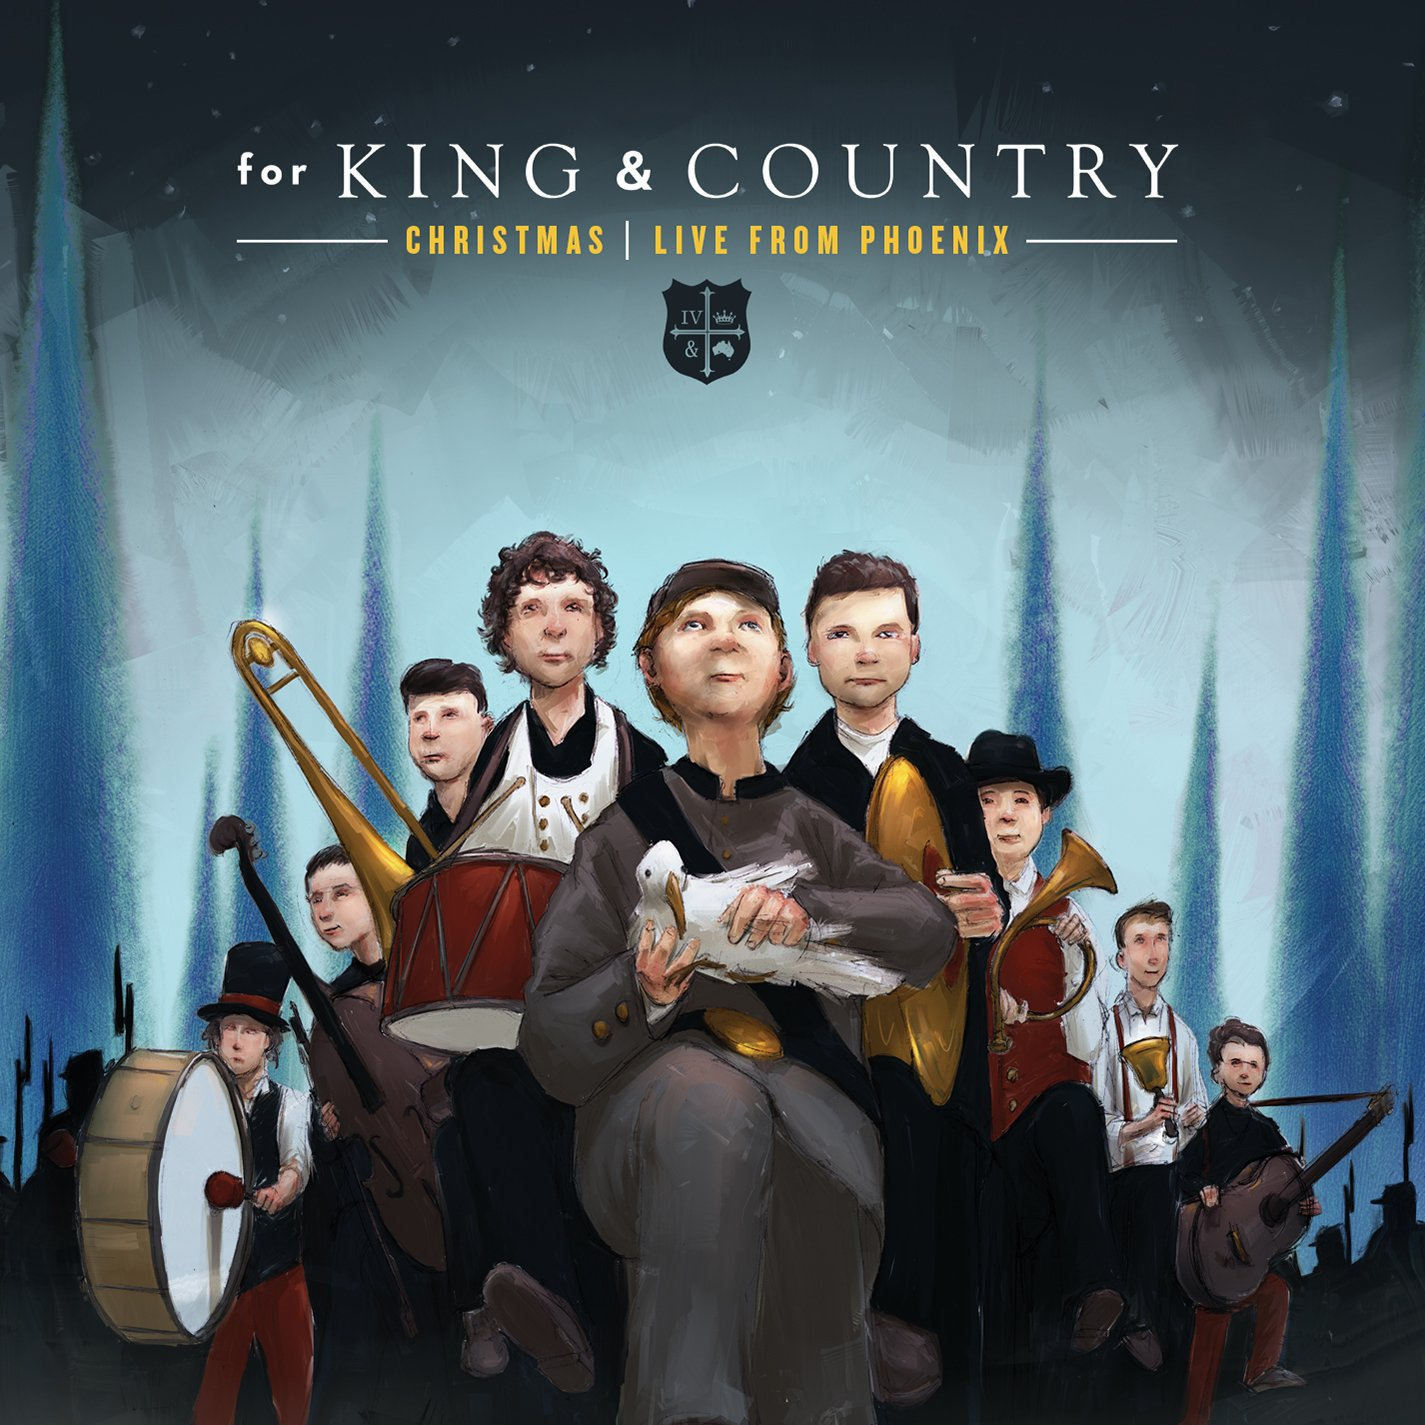 For King And Country Christmas.A For King Country Christmas Live From Phoenix